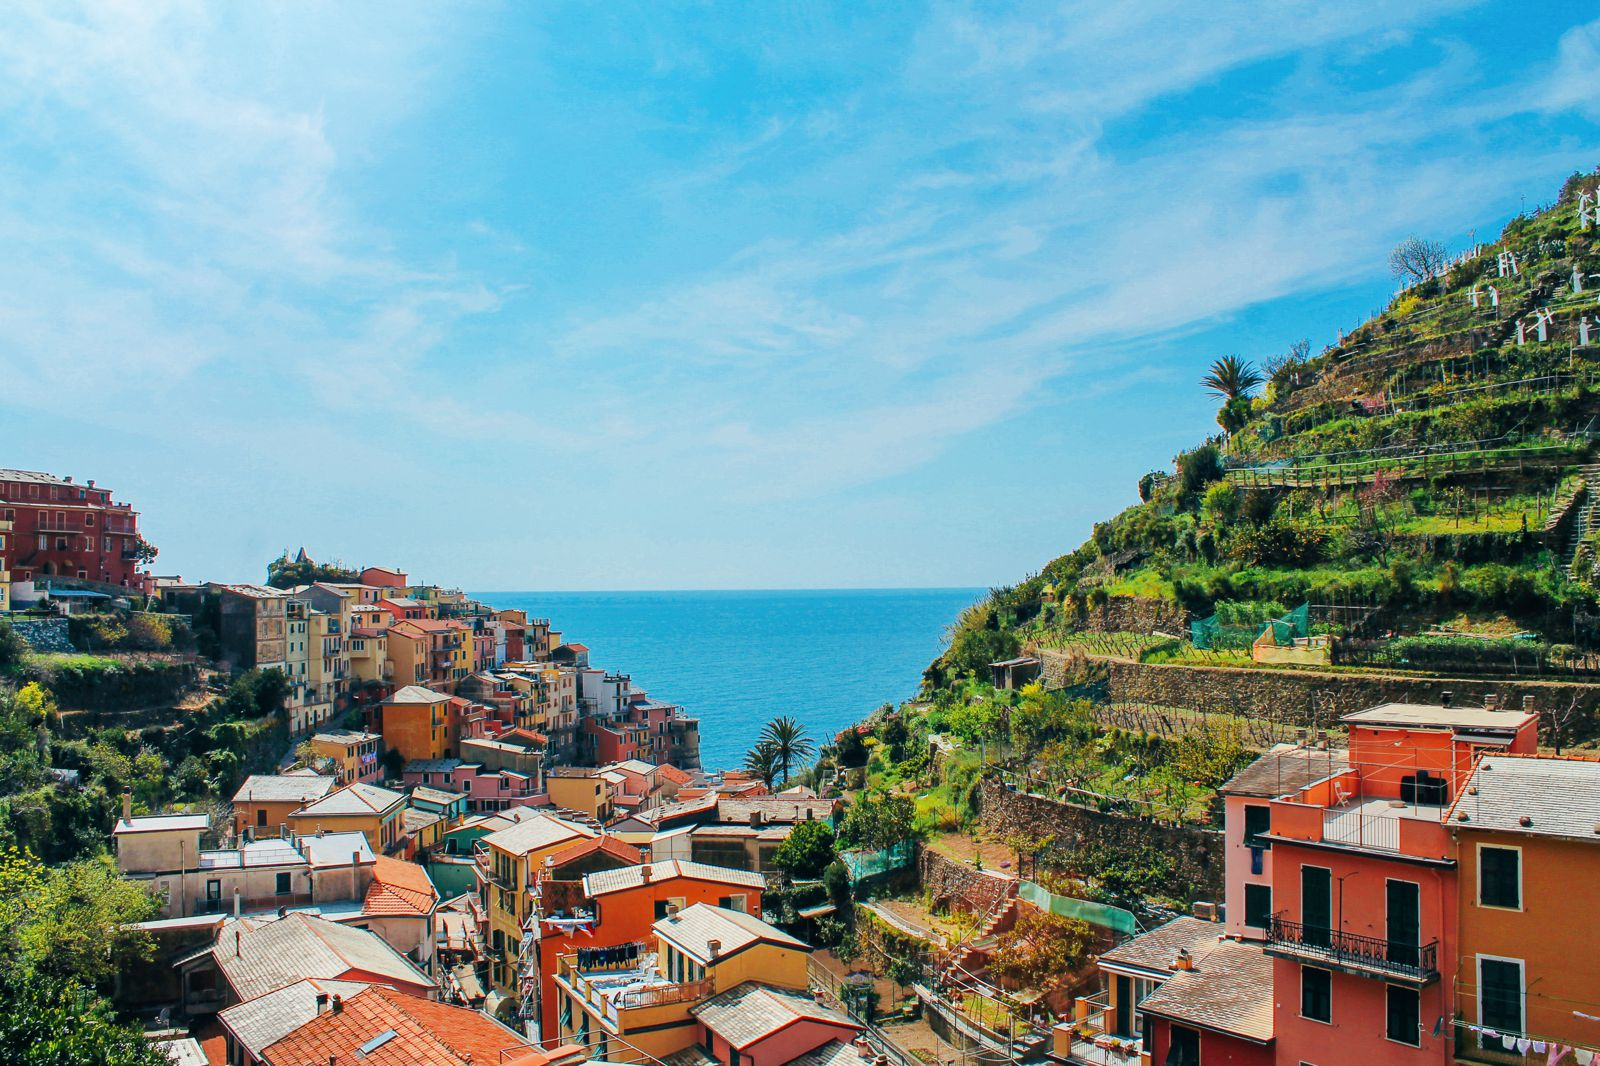 Manarola in Cinque Terre, Italy - The Photo Diary! [2 of 5] (1)